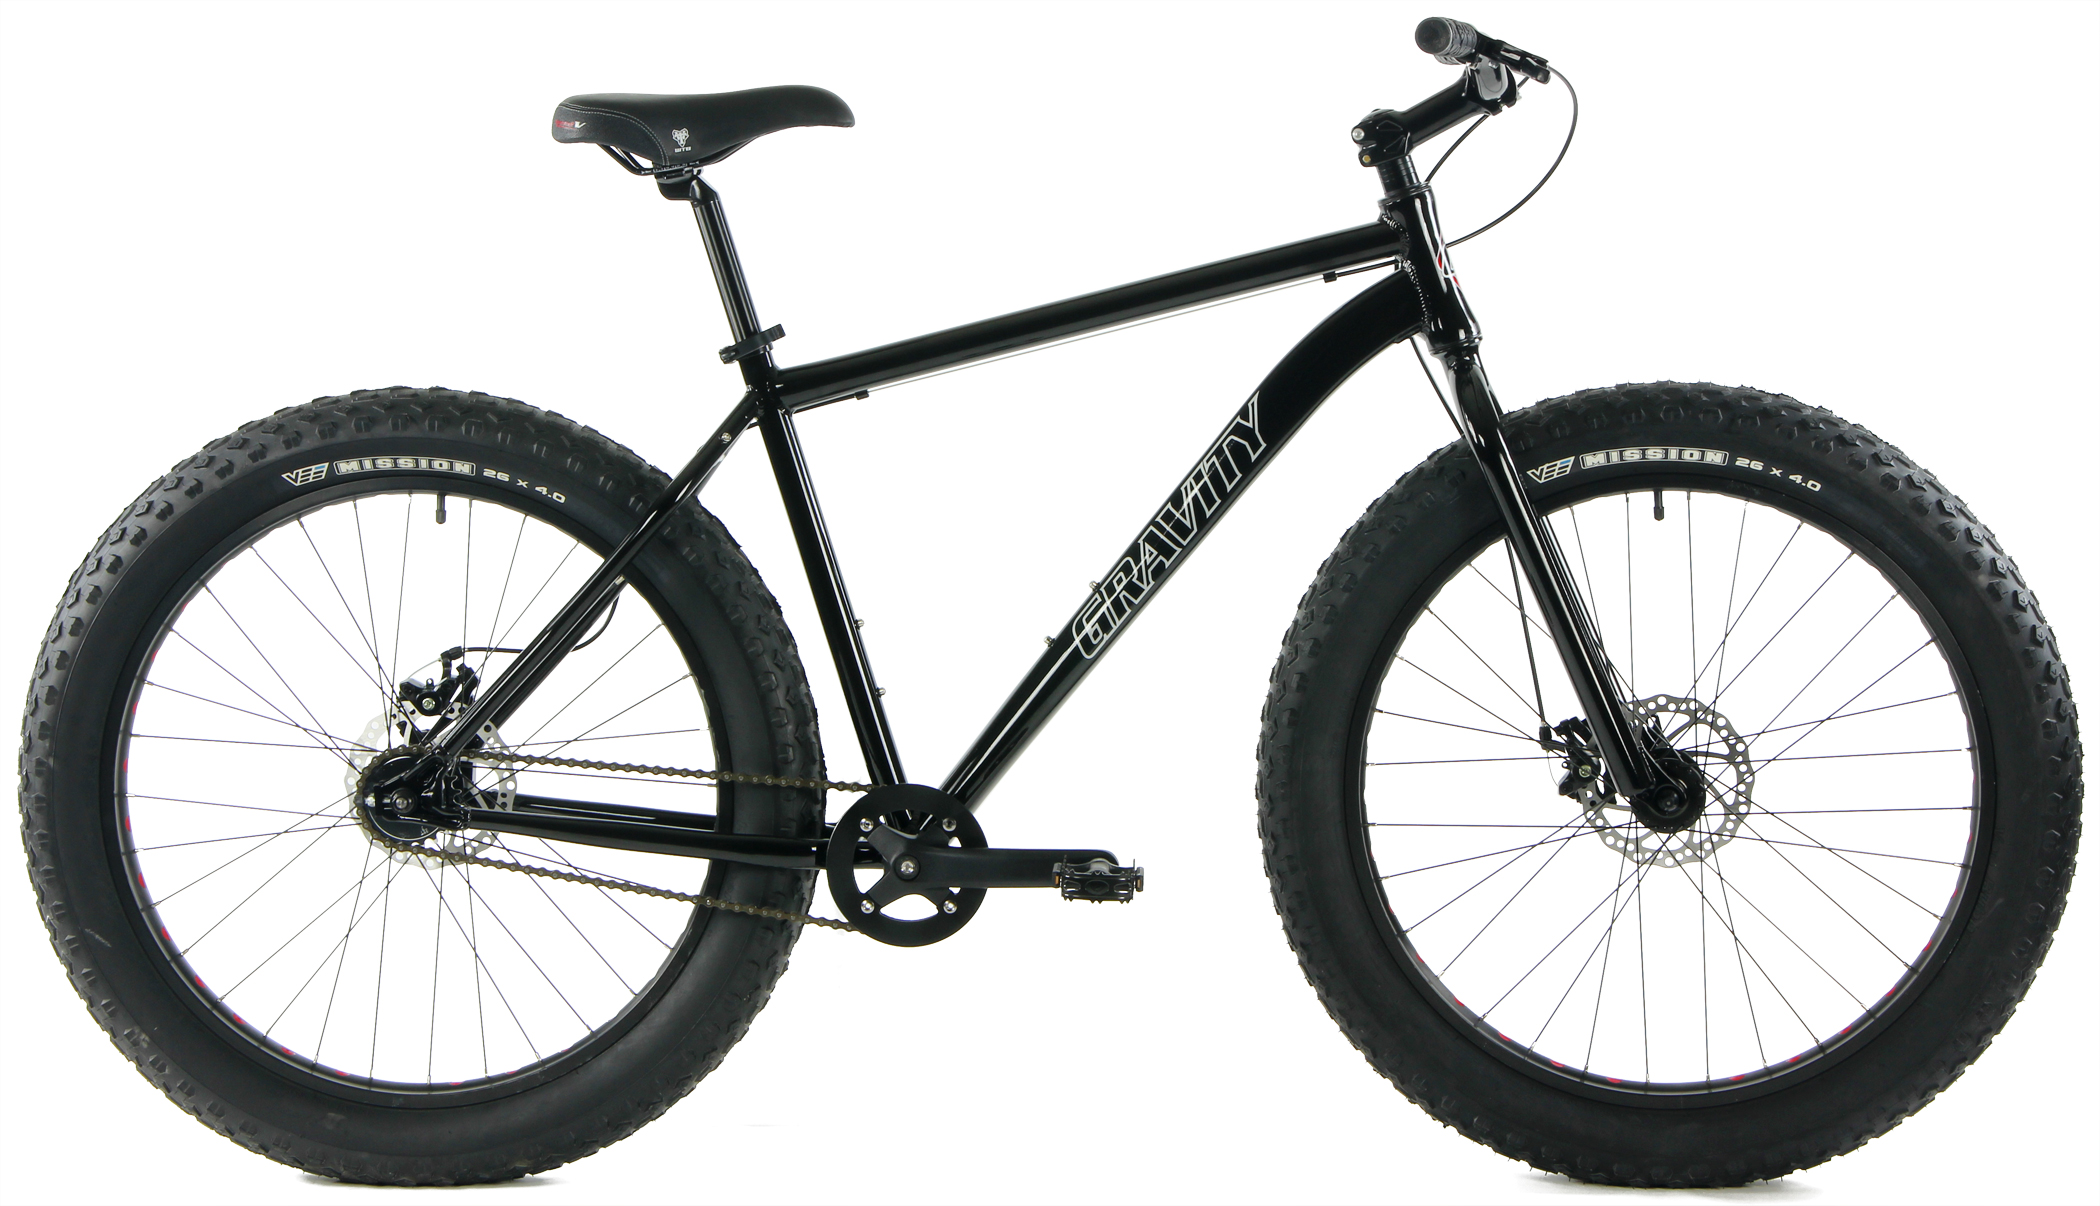 DEADEYE MONSTER - FAT TIRE SINGLE SPEED MOUNTAIN BIKE w/ DISC BRAKES